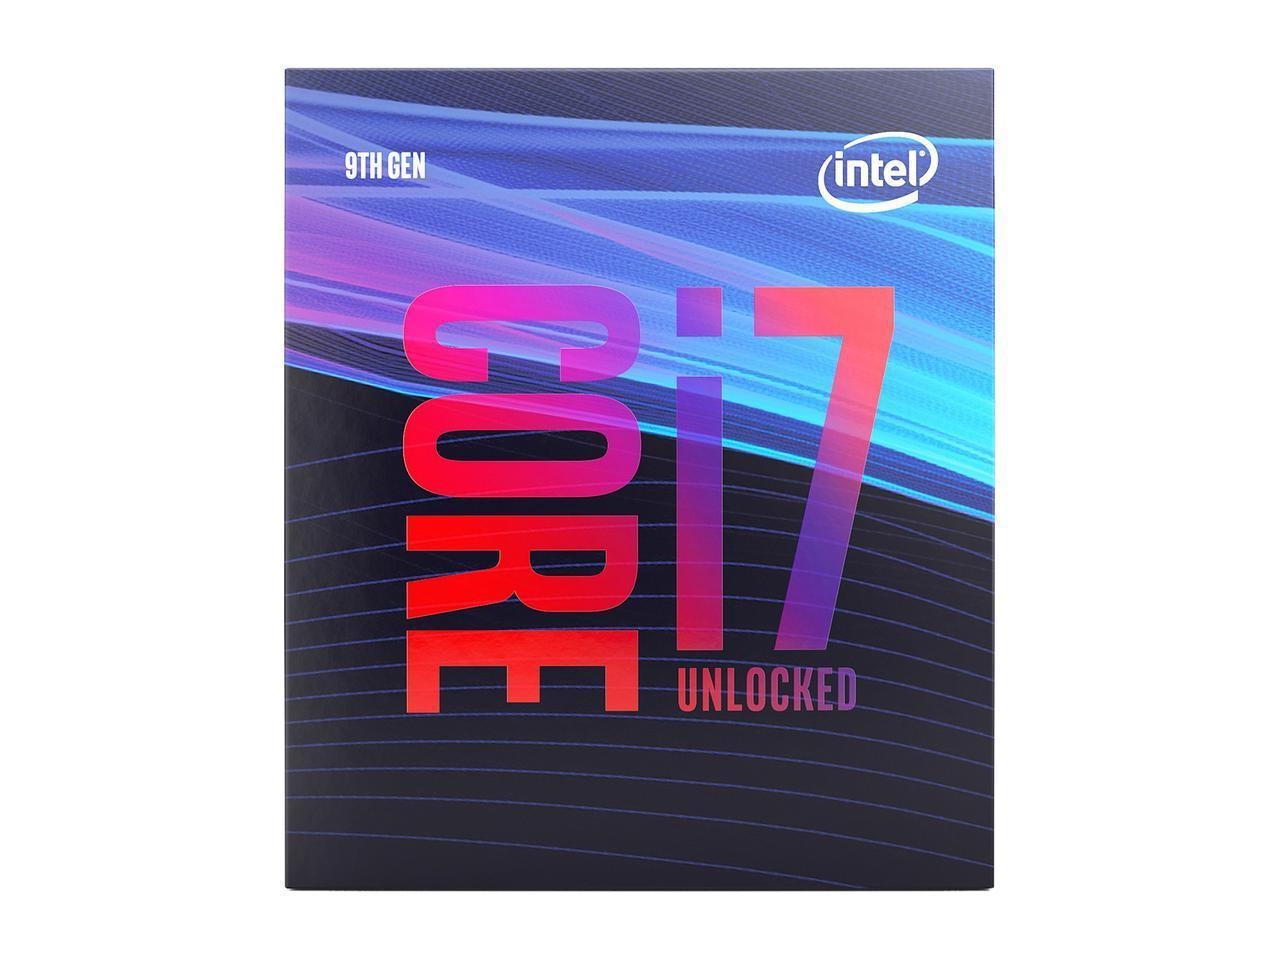 Процесор Intel Coffee Lake Core i7-9700K 3.60GHz (up to 4.90GHz), 12MB, 95W,  LGA1151 (300 Series)